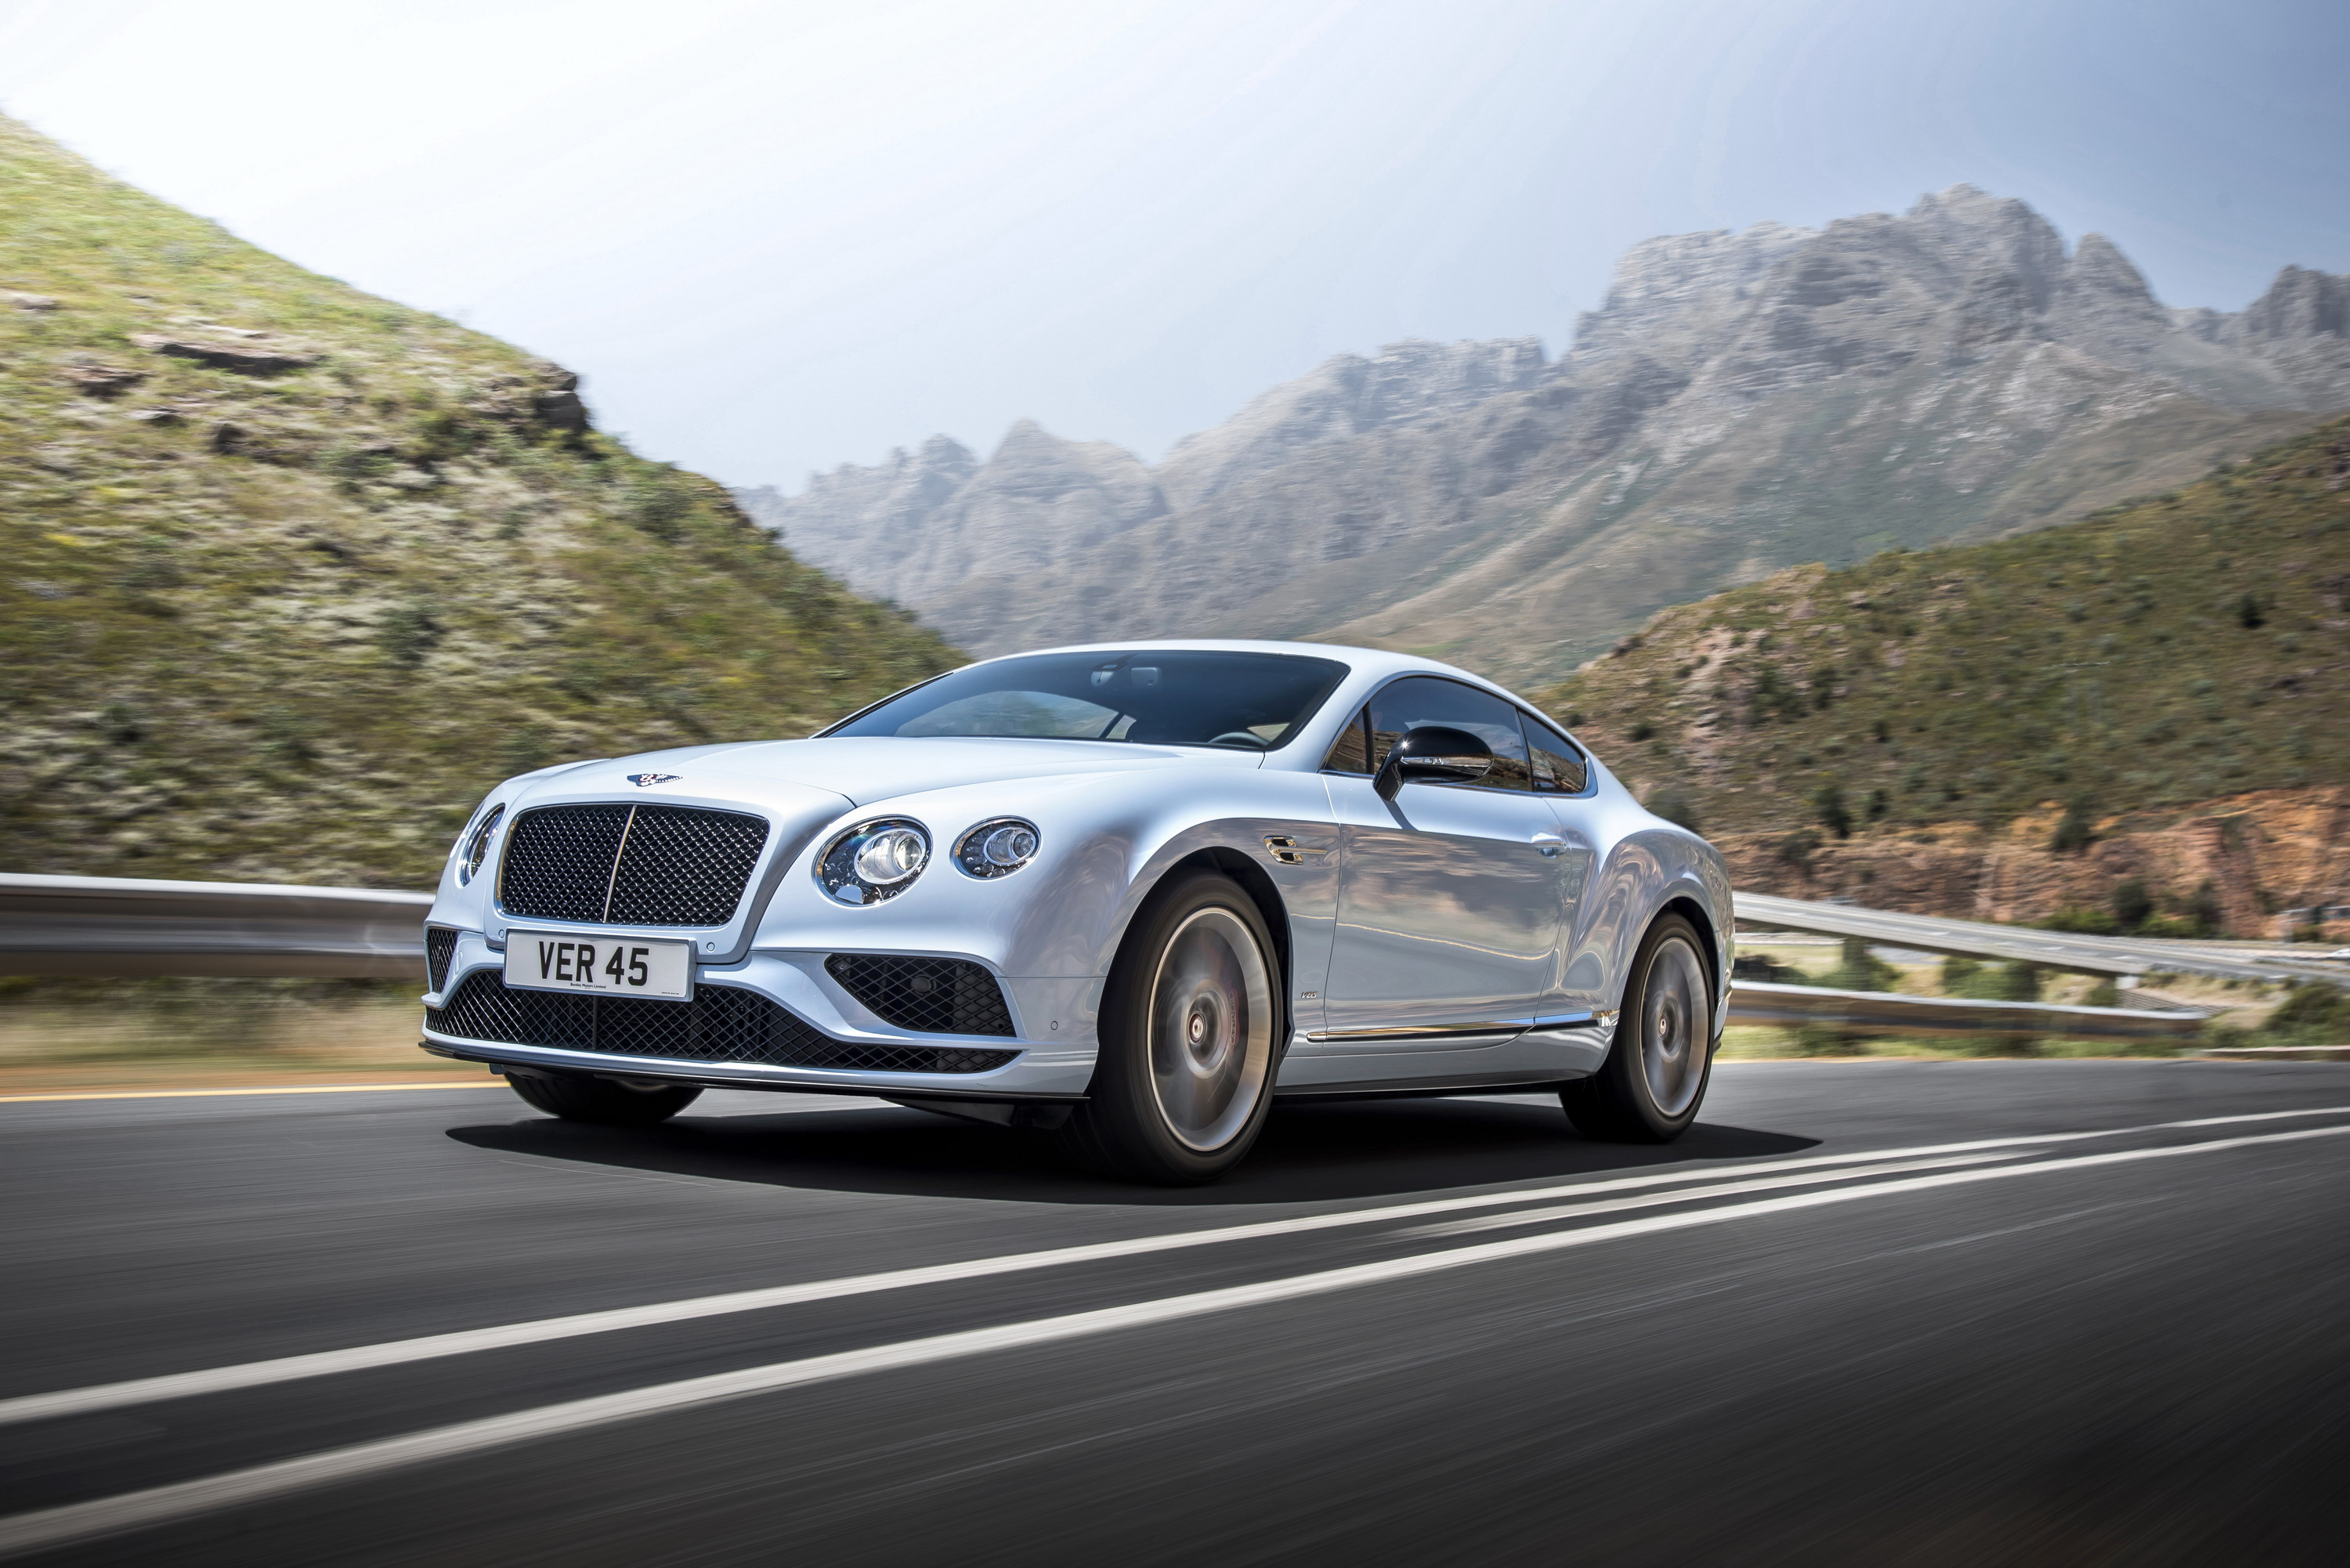 continental preview interior bentley gt concept new trick roadshow auto looks coupe